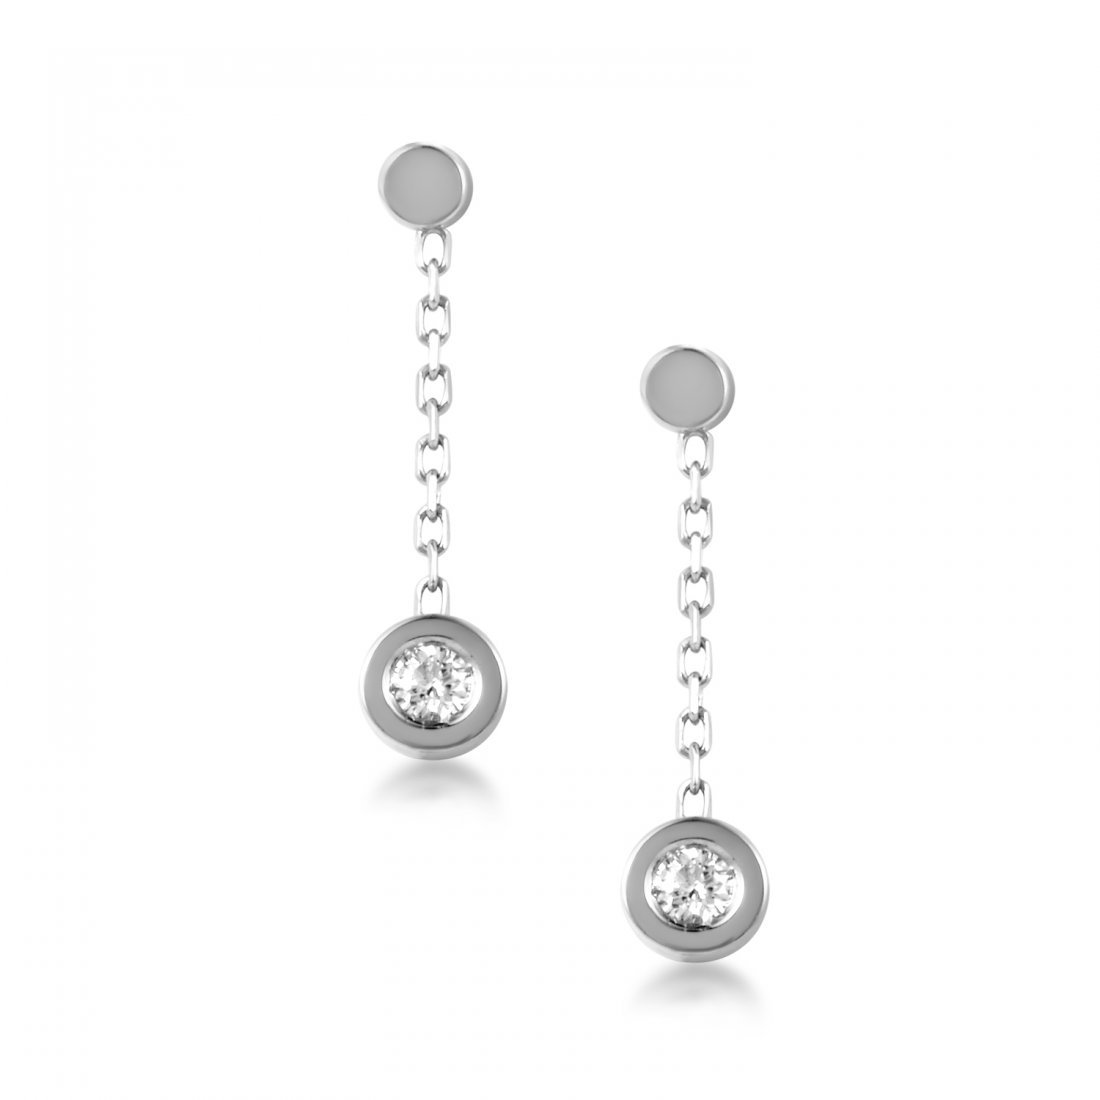 Gucci 18K White Gold Diamond Dangle Earrings 08019998